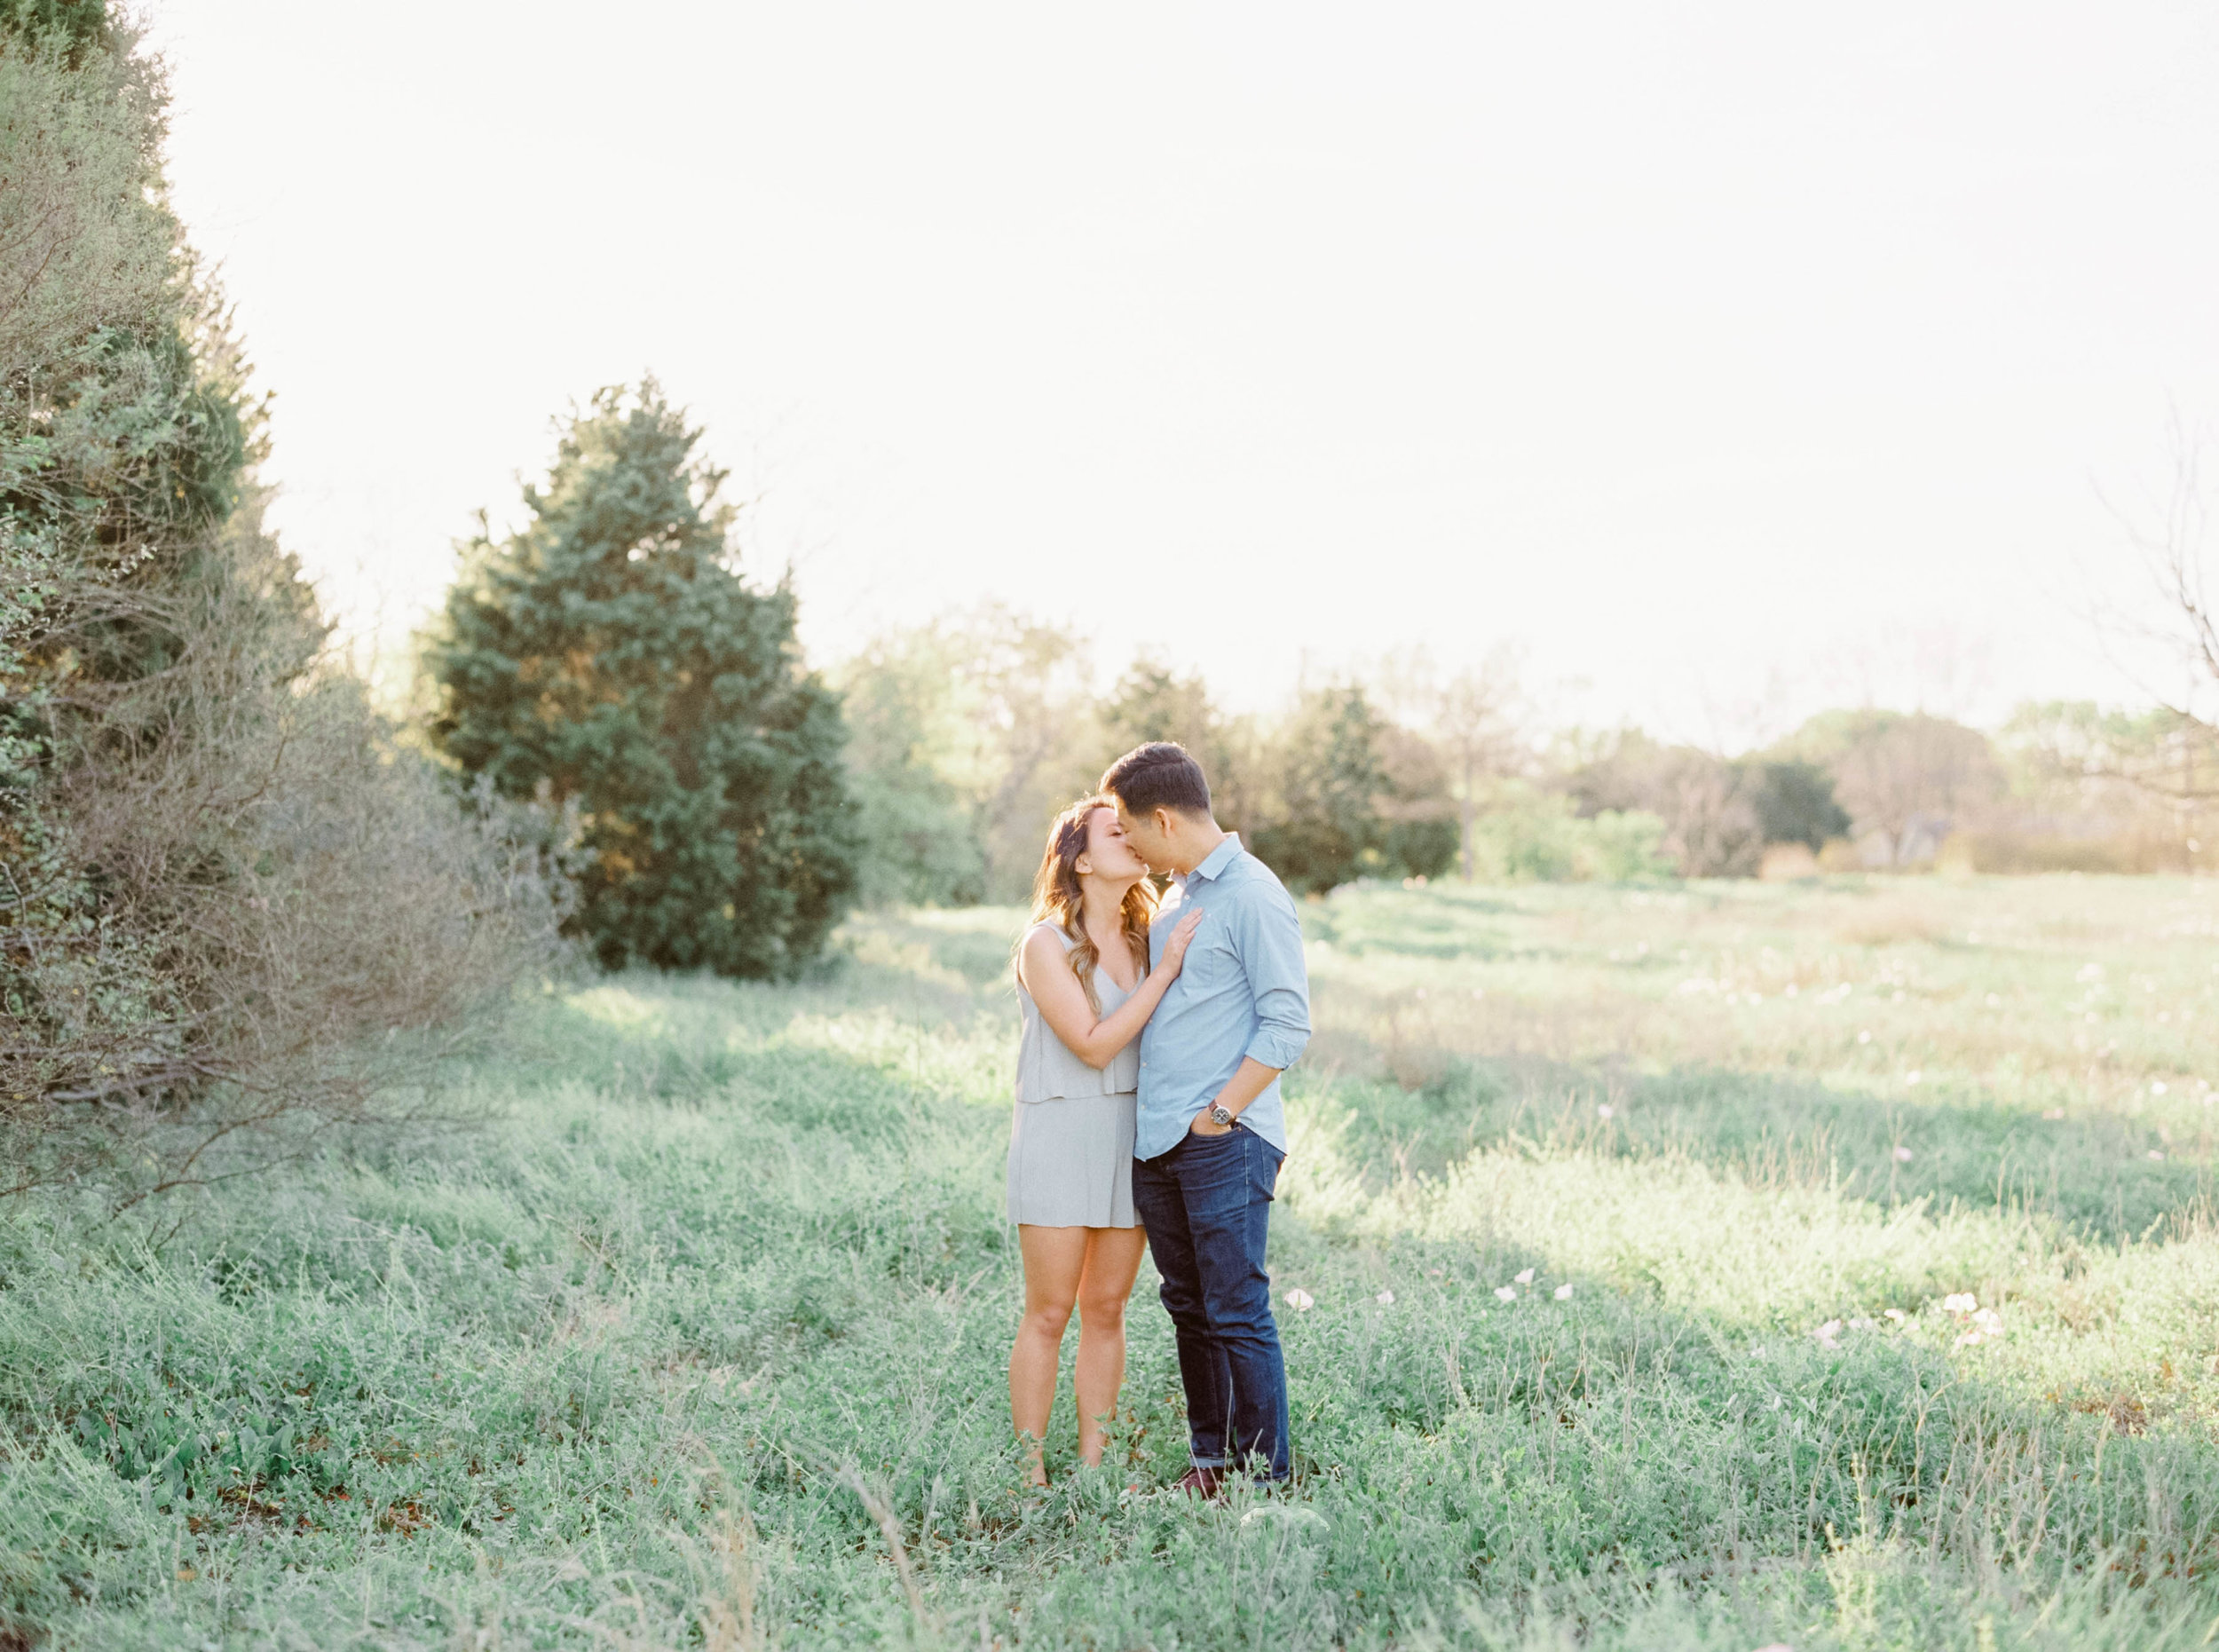 Esther + Daniel | Engagement Session at Mueller Lake Park, Austin TX